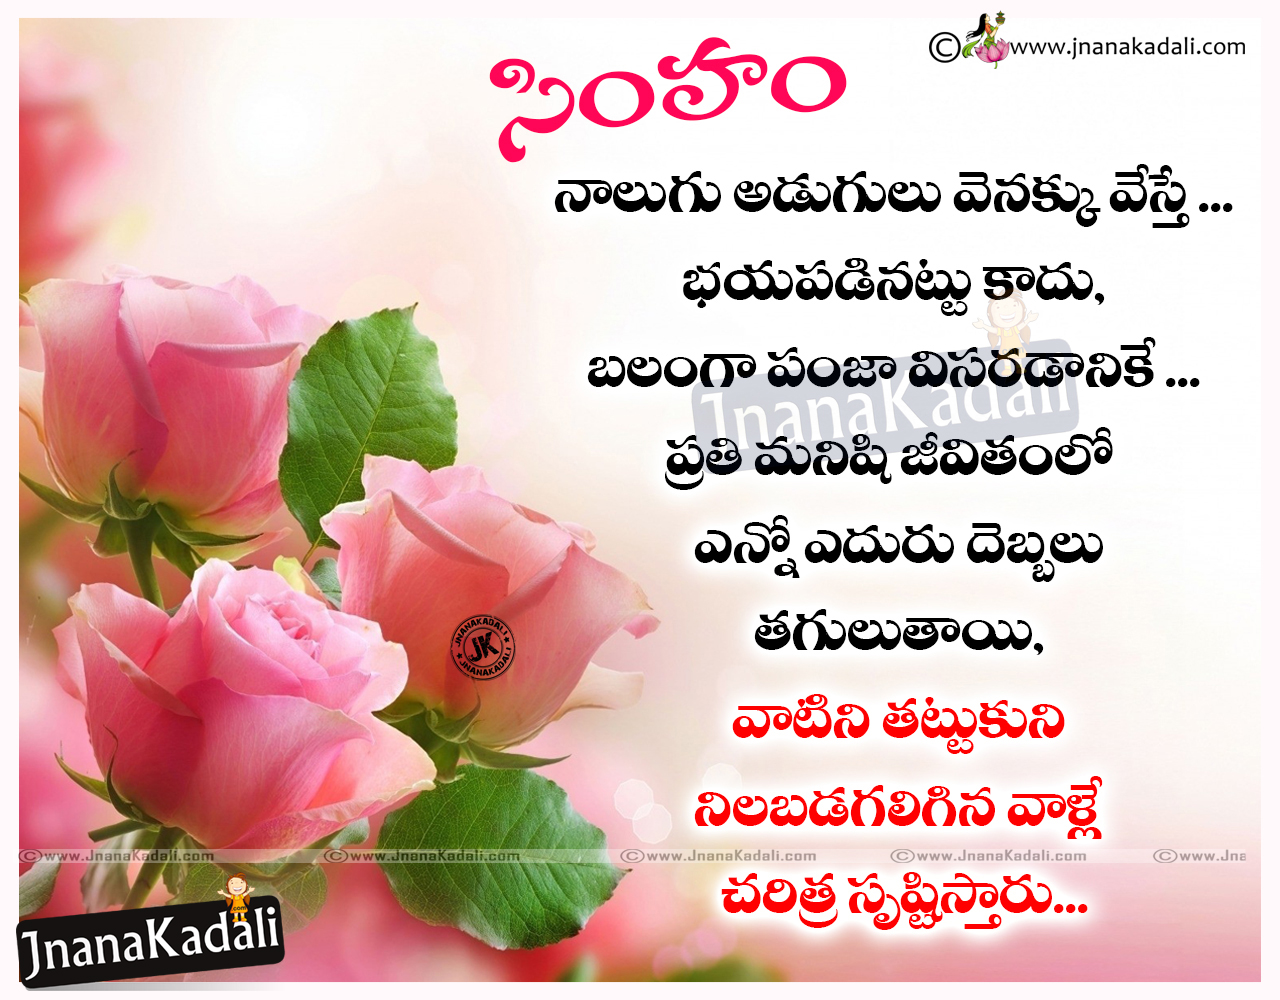 Famous Quotes About Life And Death Heart Touching Telugu Life Quotes Best Telugu Quotations About